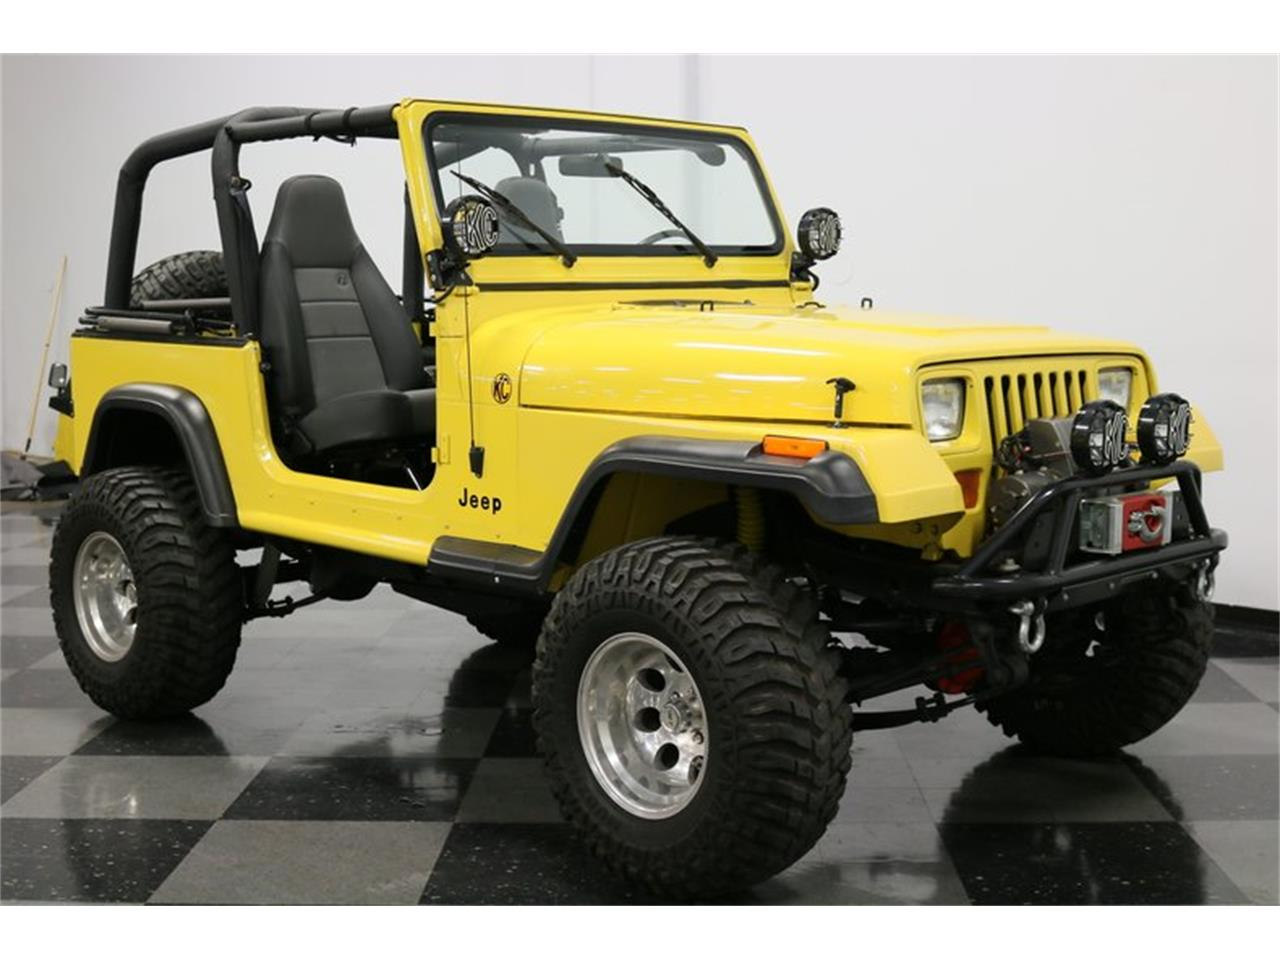 Large Picture of 1993 Jeep Wrangler located in Texas - $21,995.00 - P701